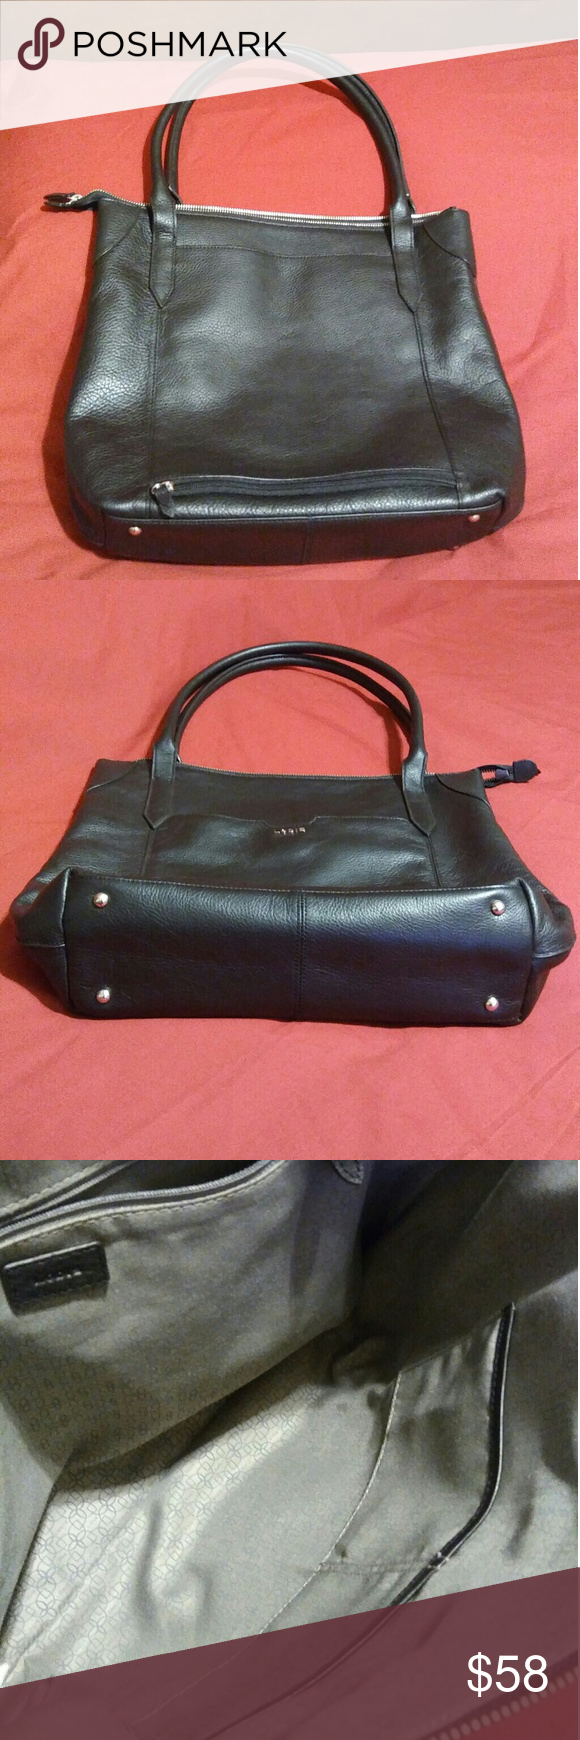 d2c33568c Lodis Kiera Leather Tote Black Lodis Kiera Leather Tote Good Condition Very  Clean, Include an Exterior Back Zip Pocket. It Has Some Marks of Normal  Use, ...